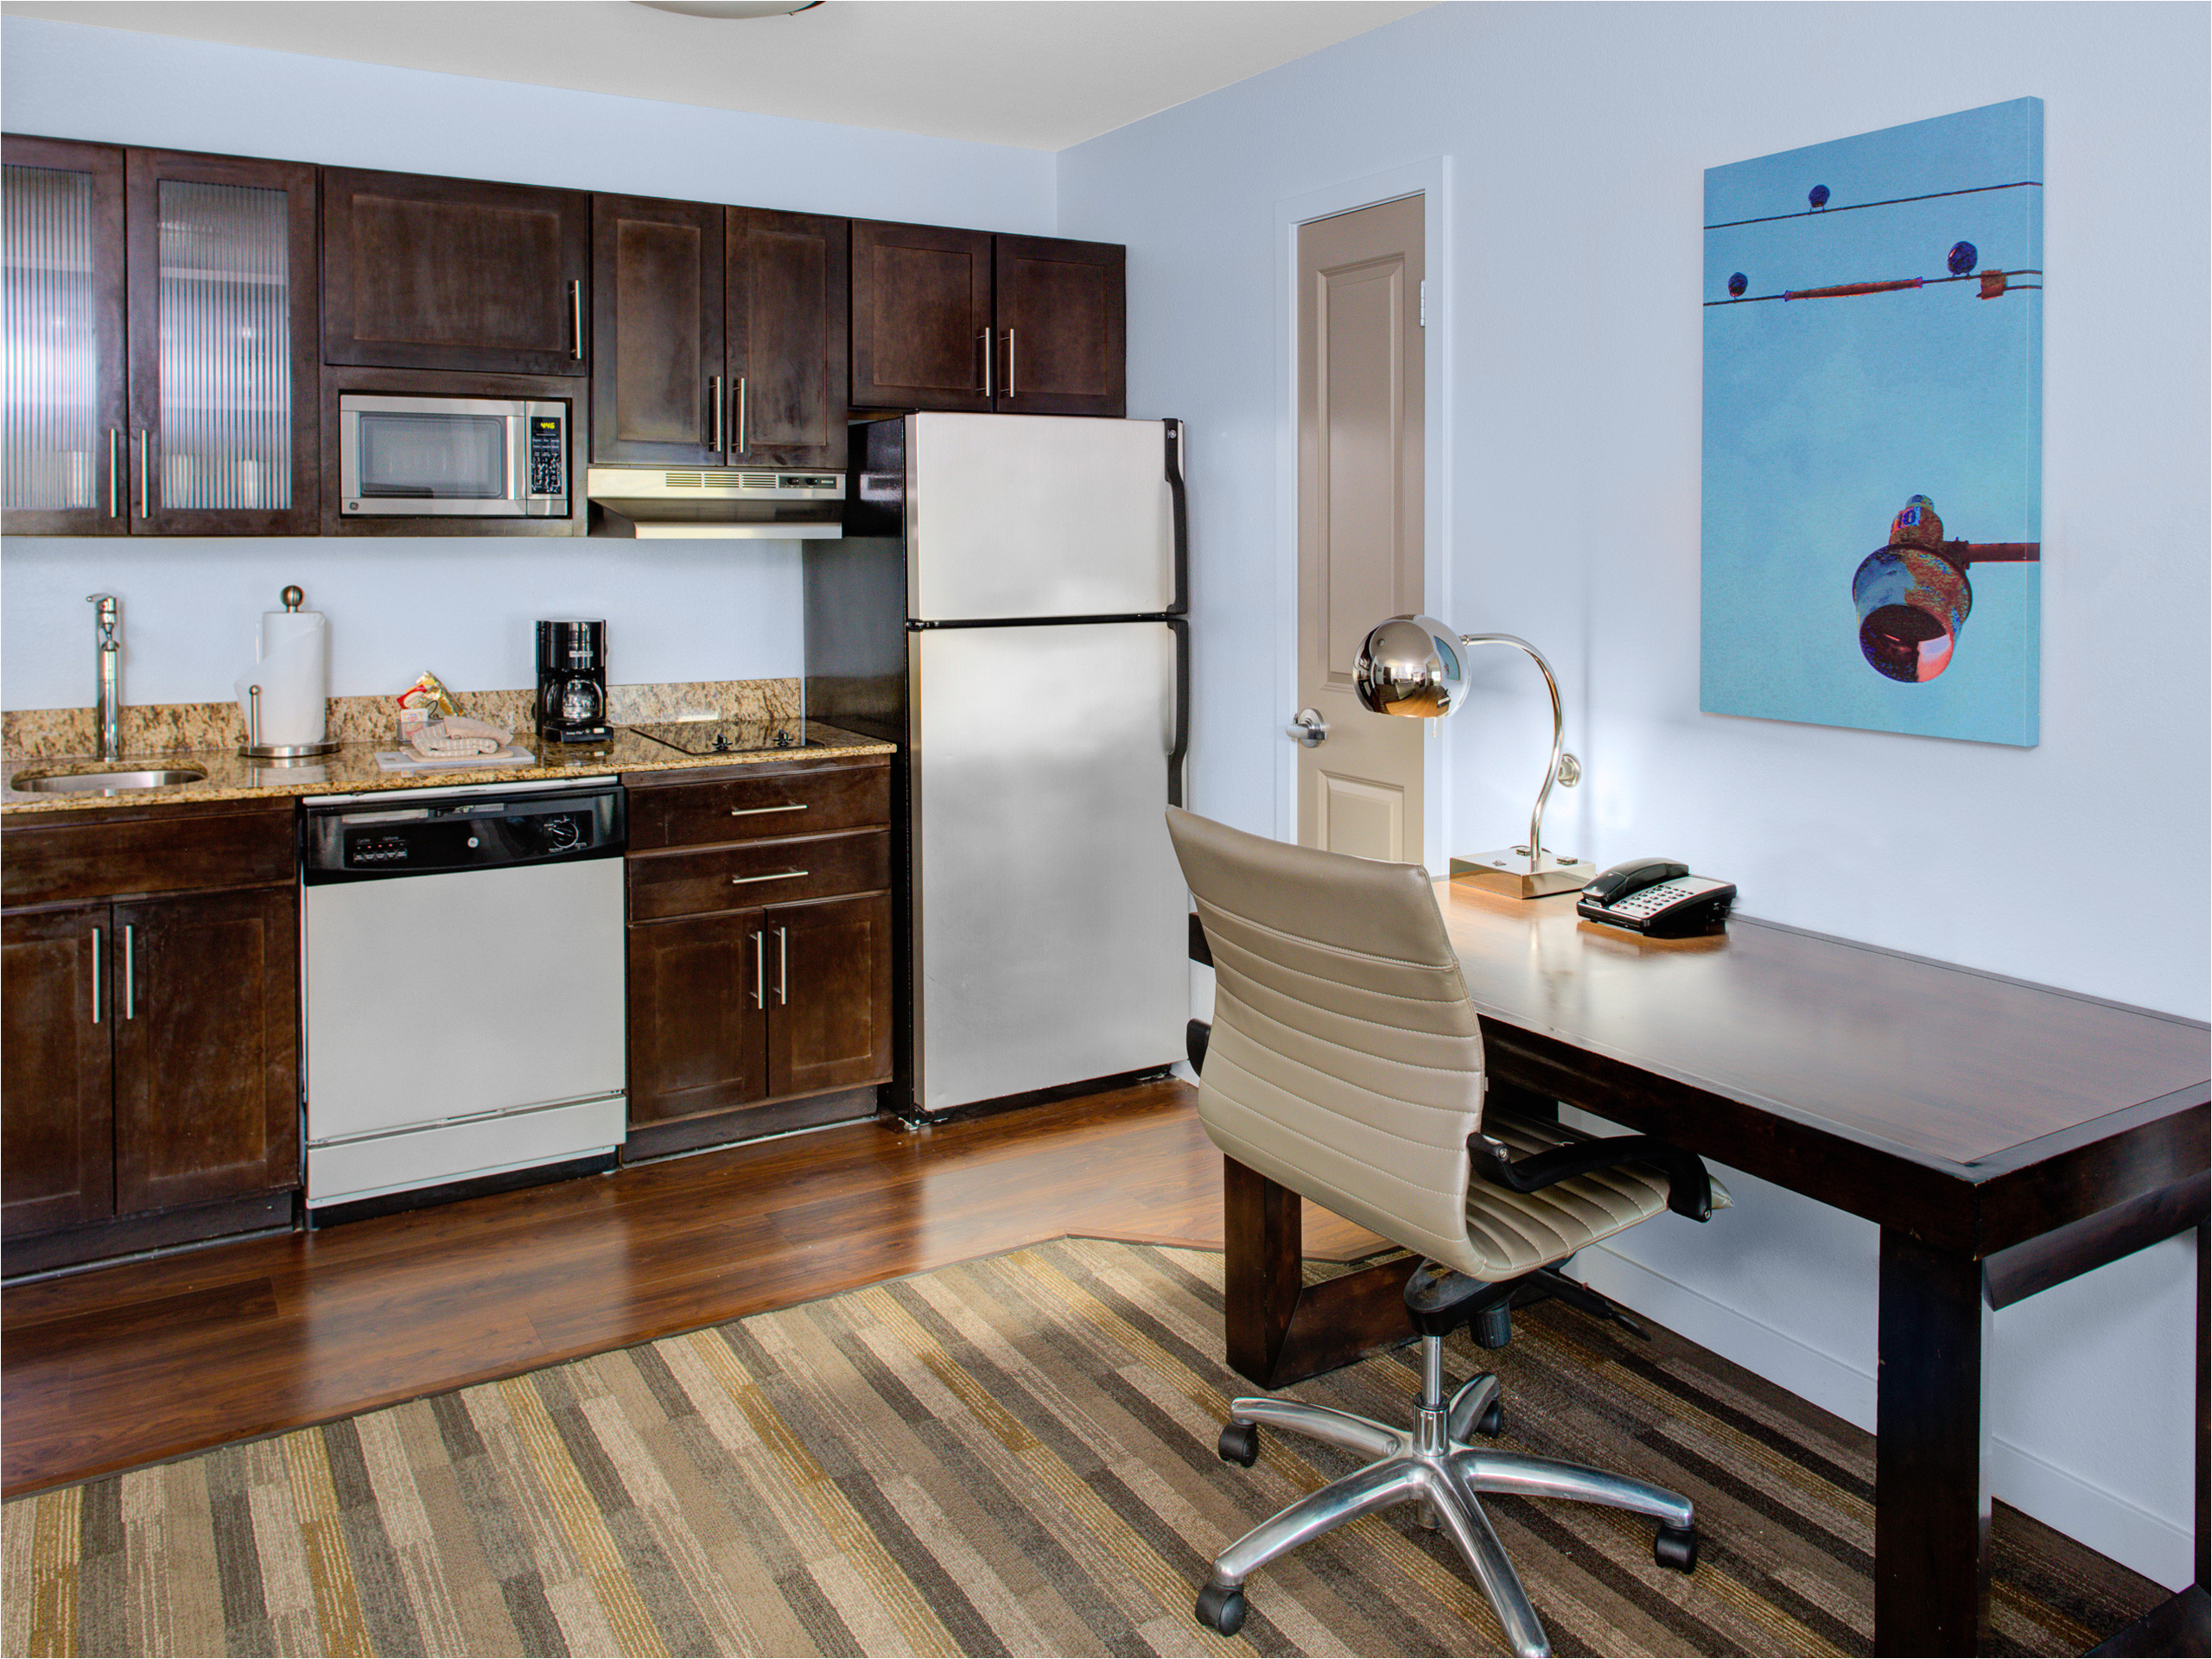 extended stay hotel near raleigh durham airport hyatt house raleigh durham airport